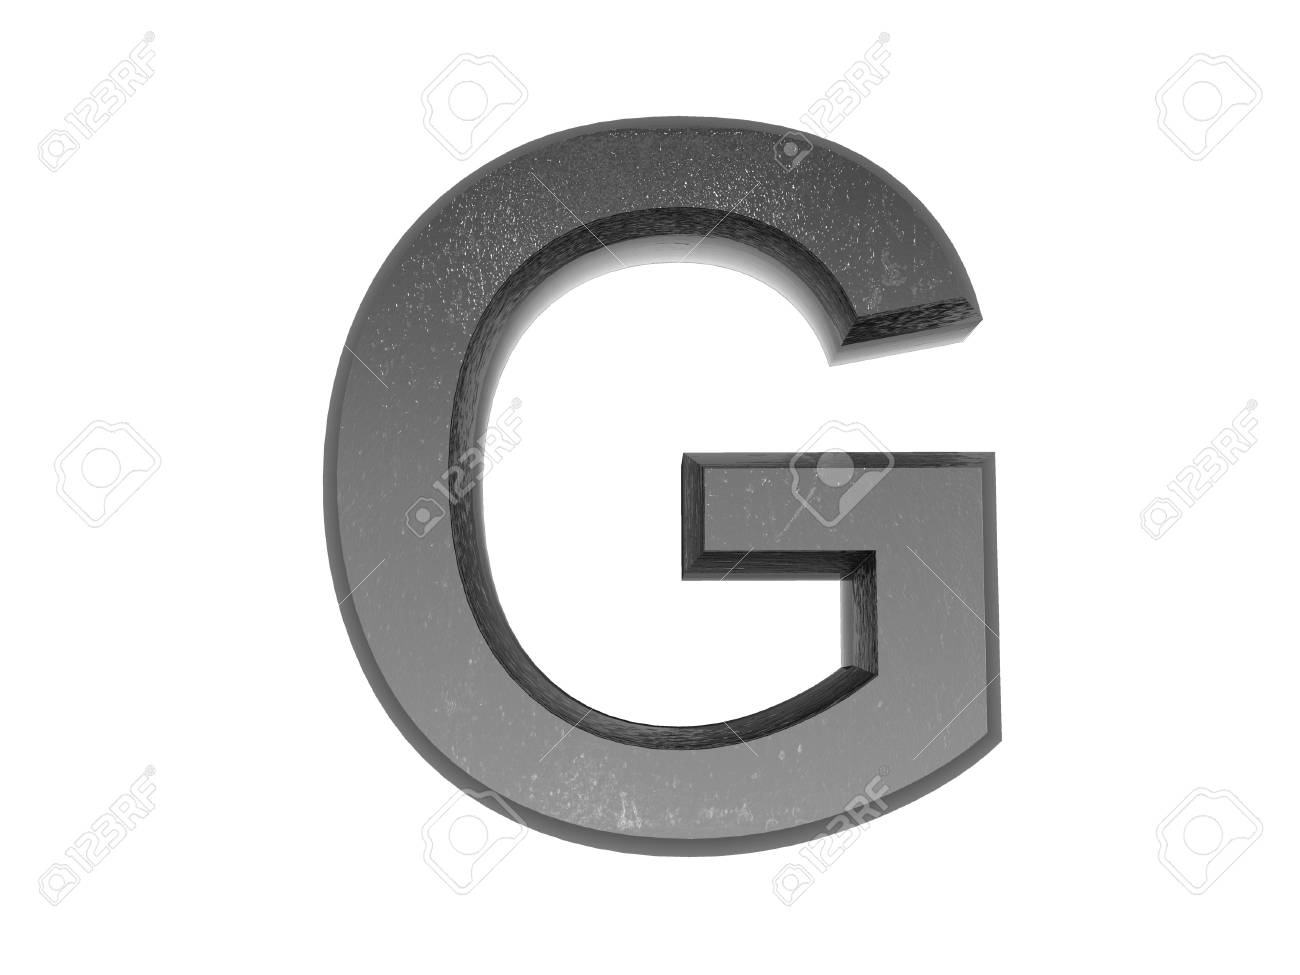 3d alphabet a in metal, on a white isolated background. Stock Photo - 9327003